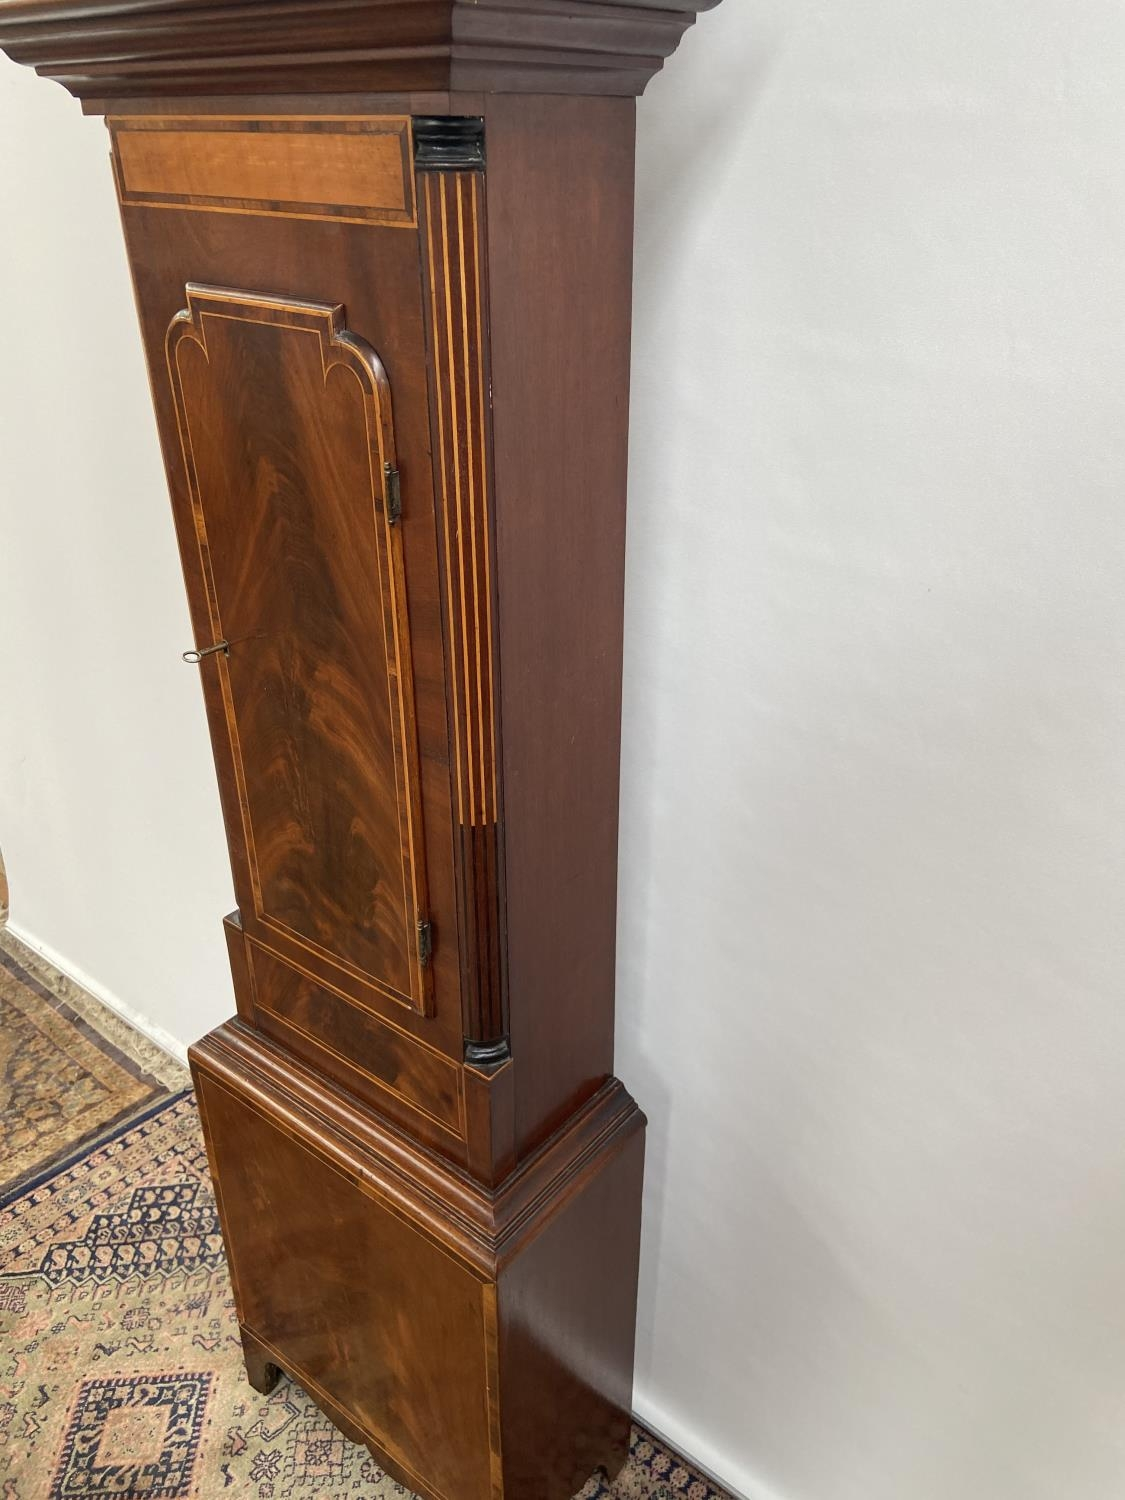 A 19th century Grandfather clock in a working condition [24x44x24cm] - Image 11 of 12